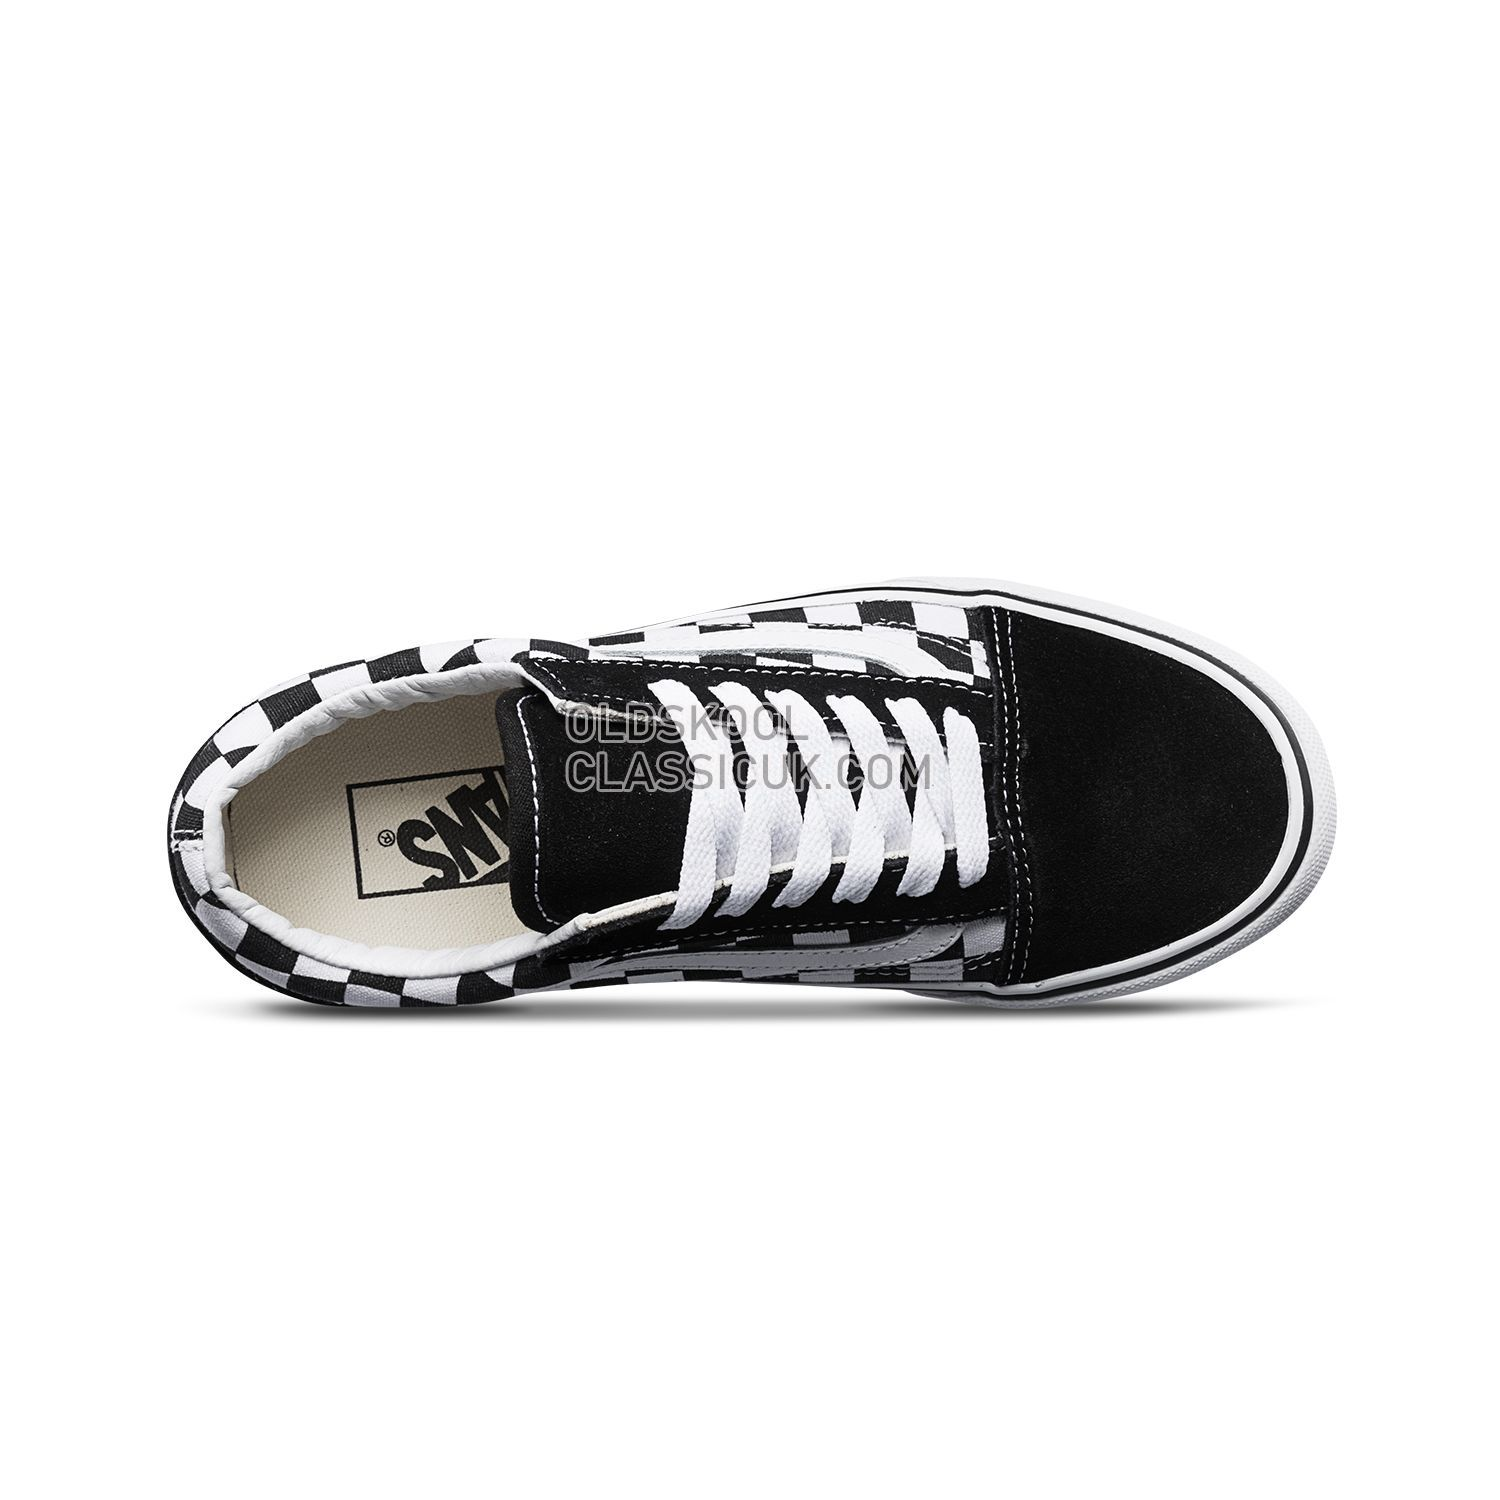 d91e39aff9d Vans Checkerboardboard Old Skool Platform Sneakers Mens Womens Unisex Black-True  White B3UHRK Shoes - £65